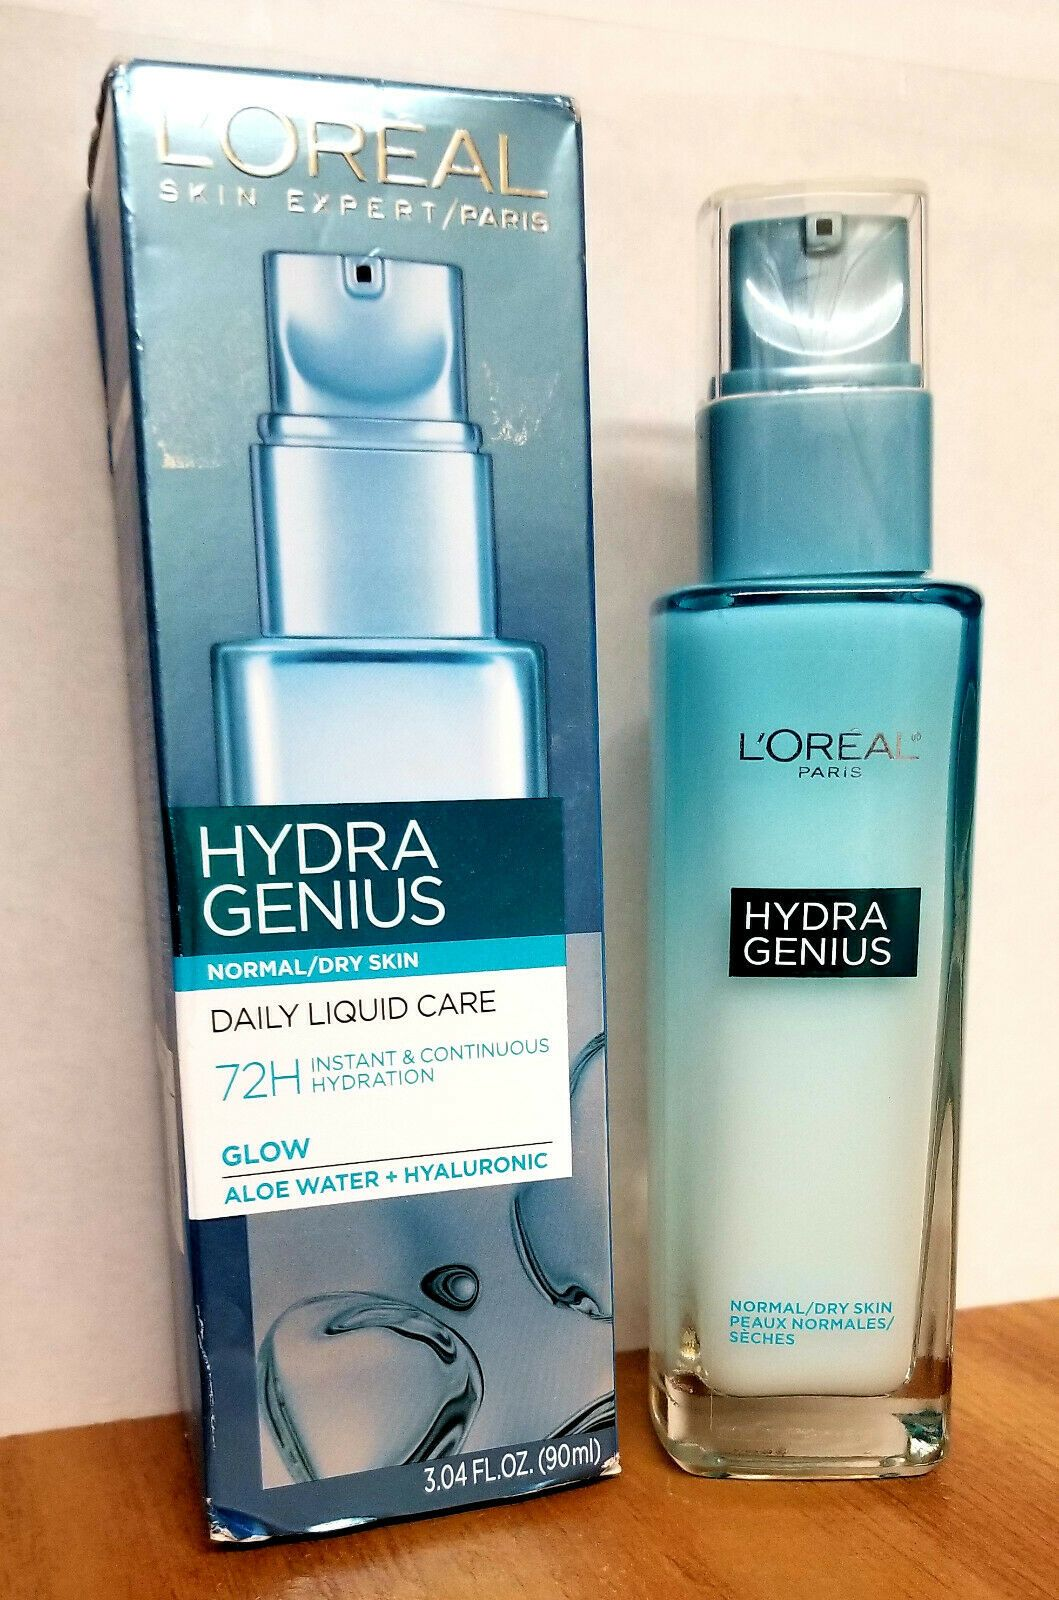 L Oreal Paris Skin Care Hydra Genius Daily Face Moisturizer For Normal Dry Skin In 2020 Daily Face Moisturizer Face Moisturizer Loreal Skin